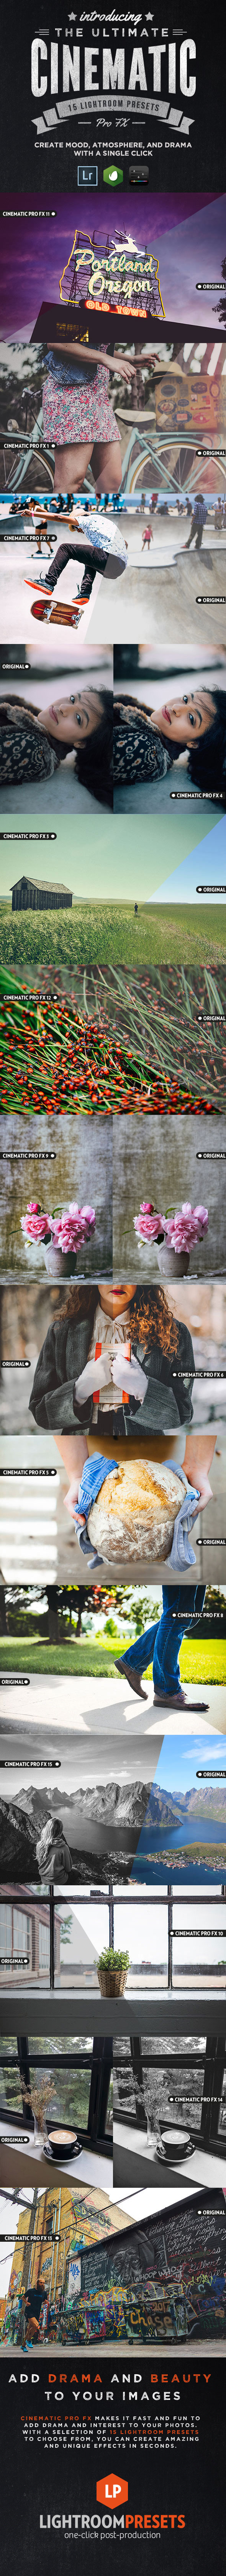 15 Cinematic Pro Fx Lightroom Presets - Cinematic Lightroom Presets